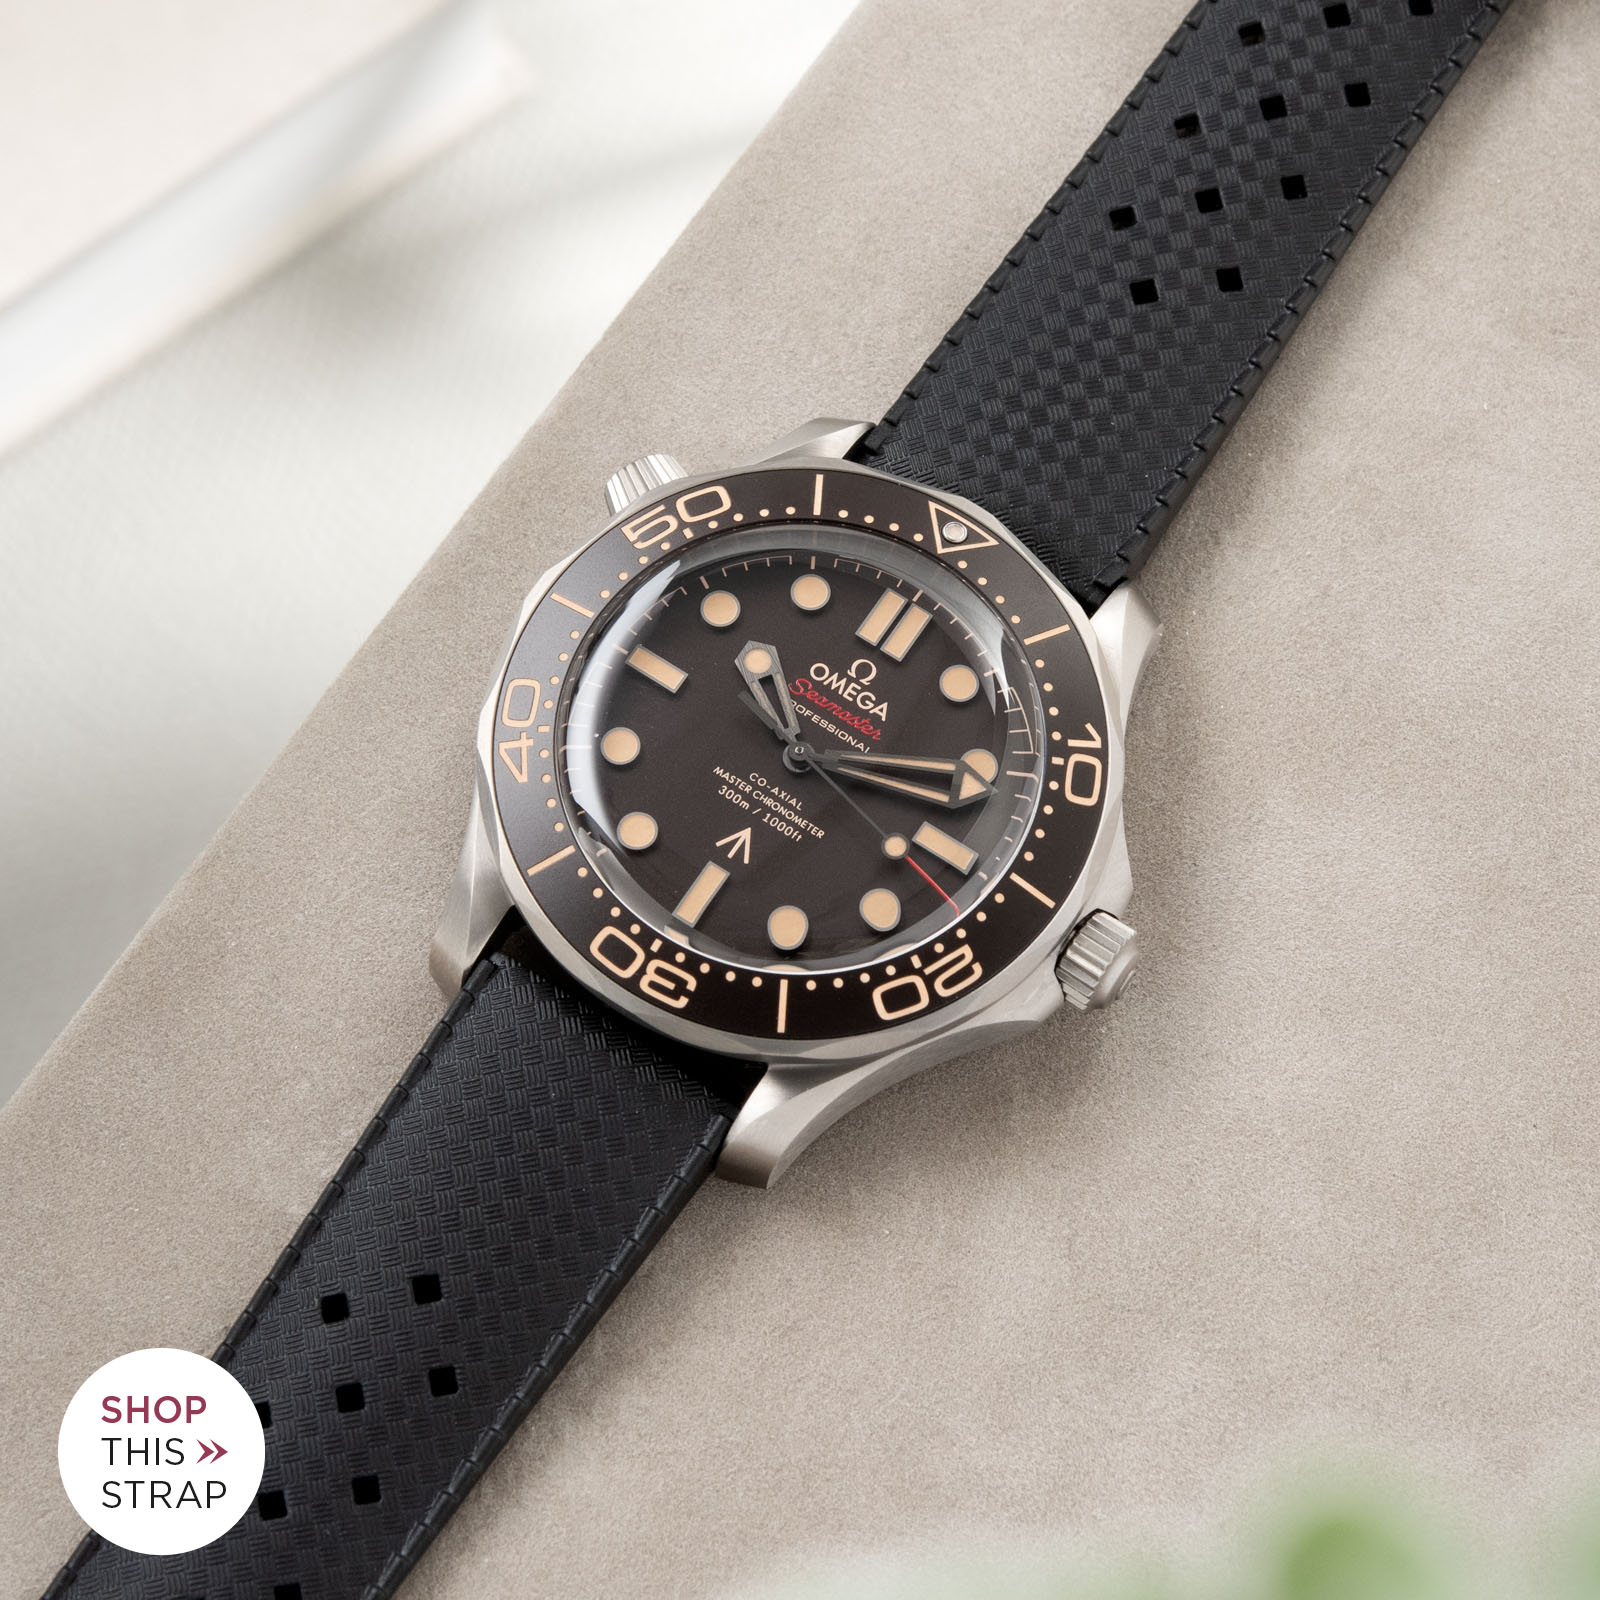 Bulang and Sons_Strapguide_Omega Seamaster_Nautic Basket Weave Black Rubber Watch Strap